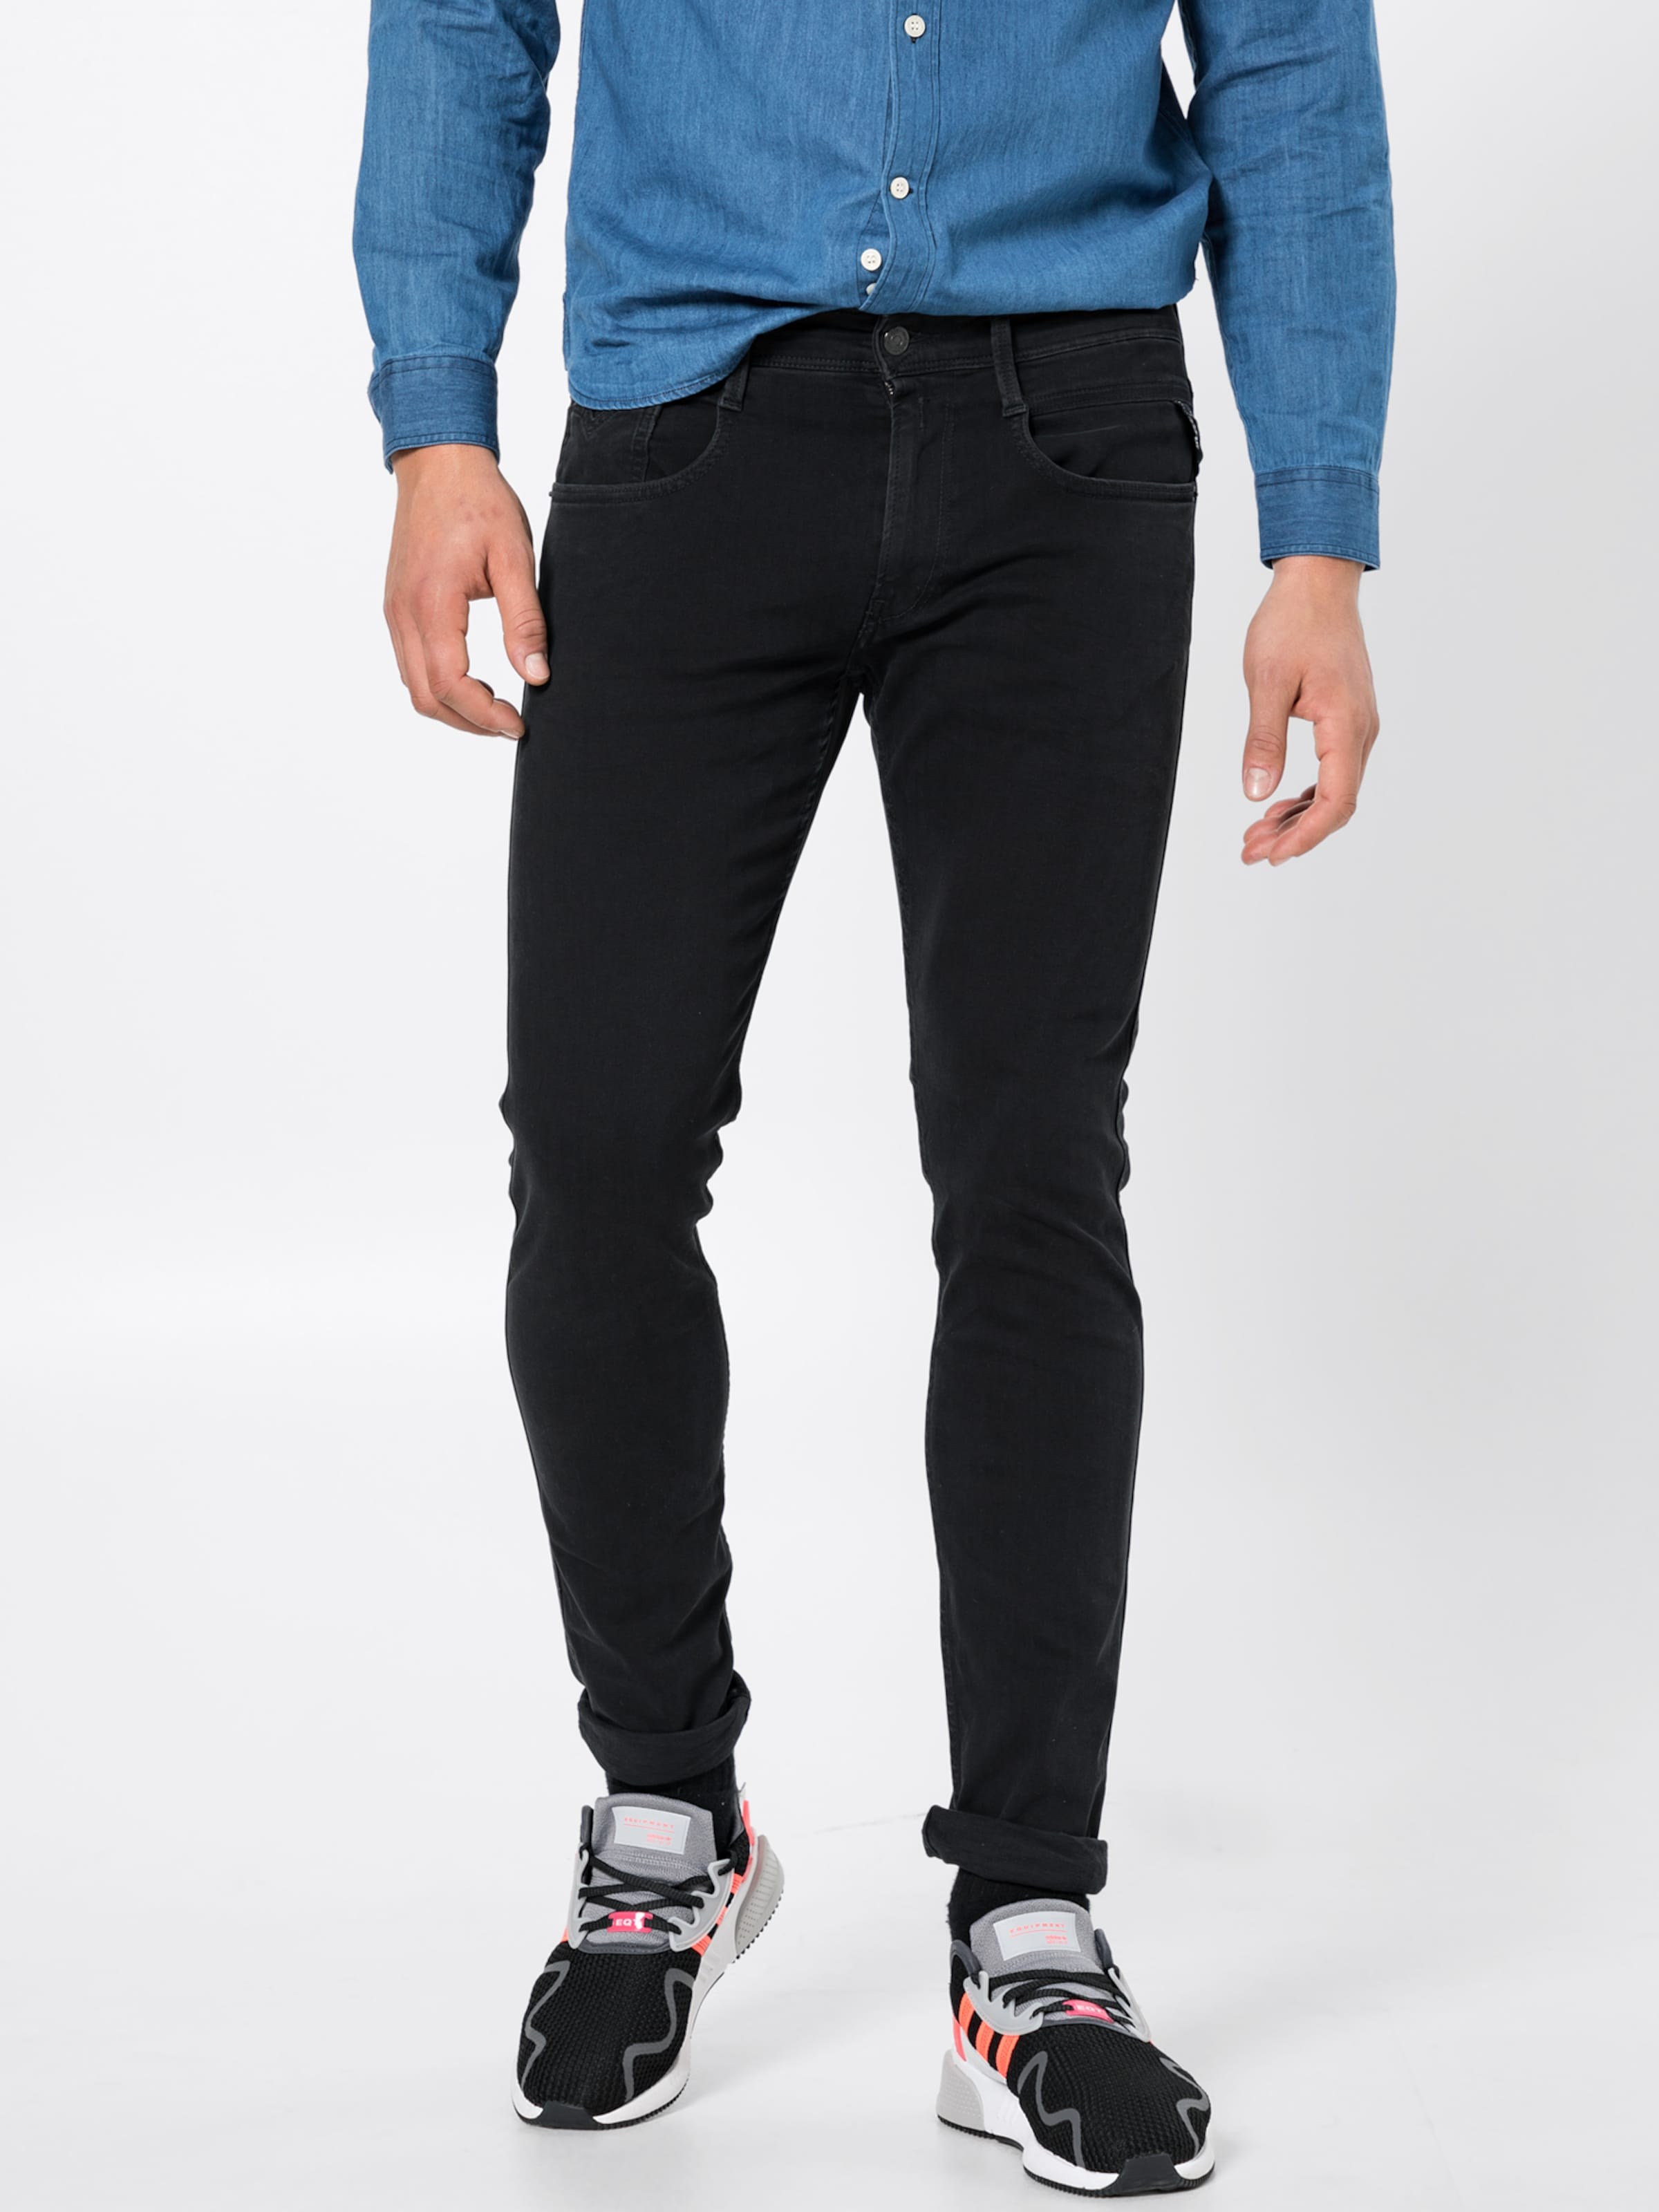 In 'anbass' Jeans Replay Schwarz Jeans 'anbass' Replay In xBoWQrCedE